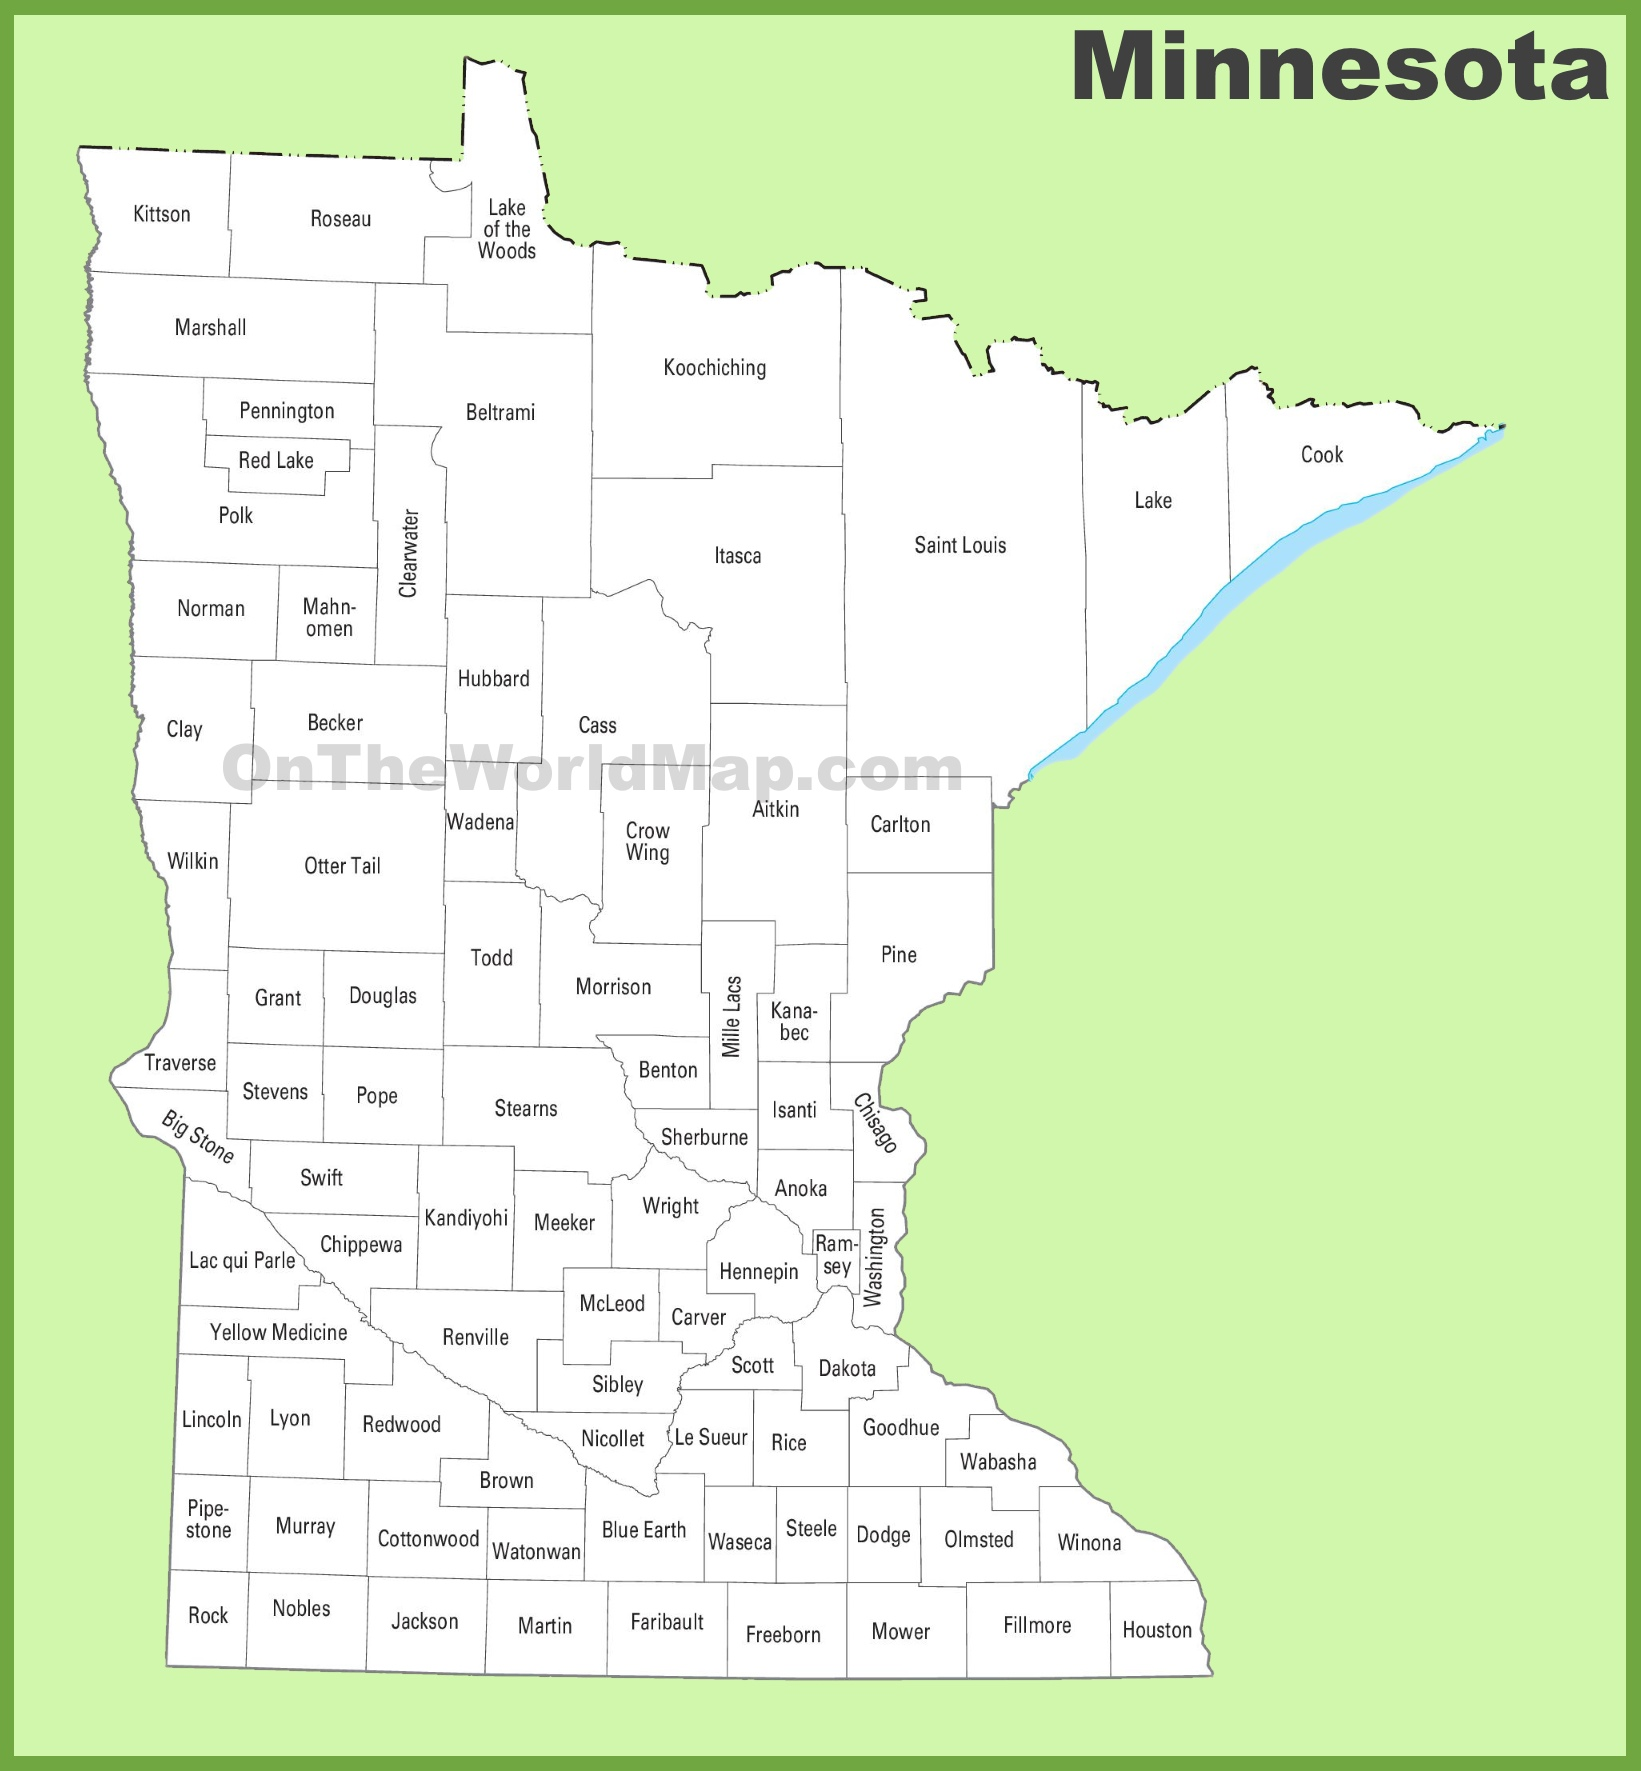 Minnesota County Map Minnesota county map Minnesota County Map